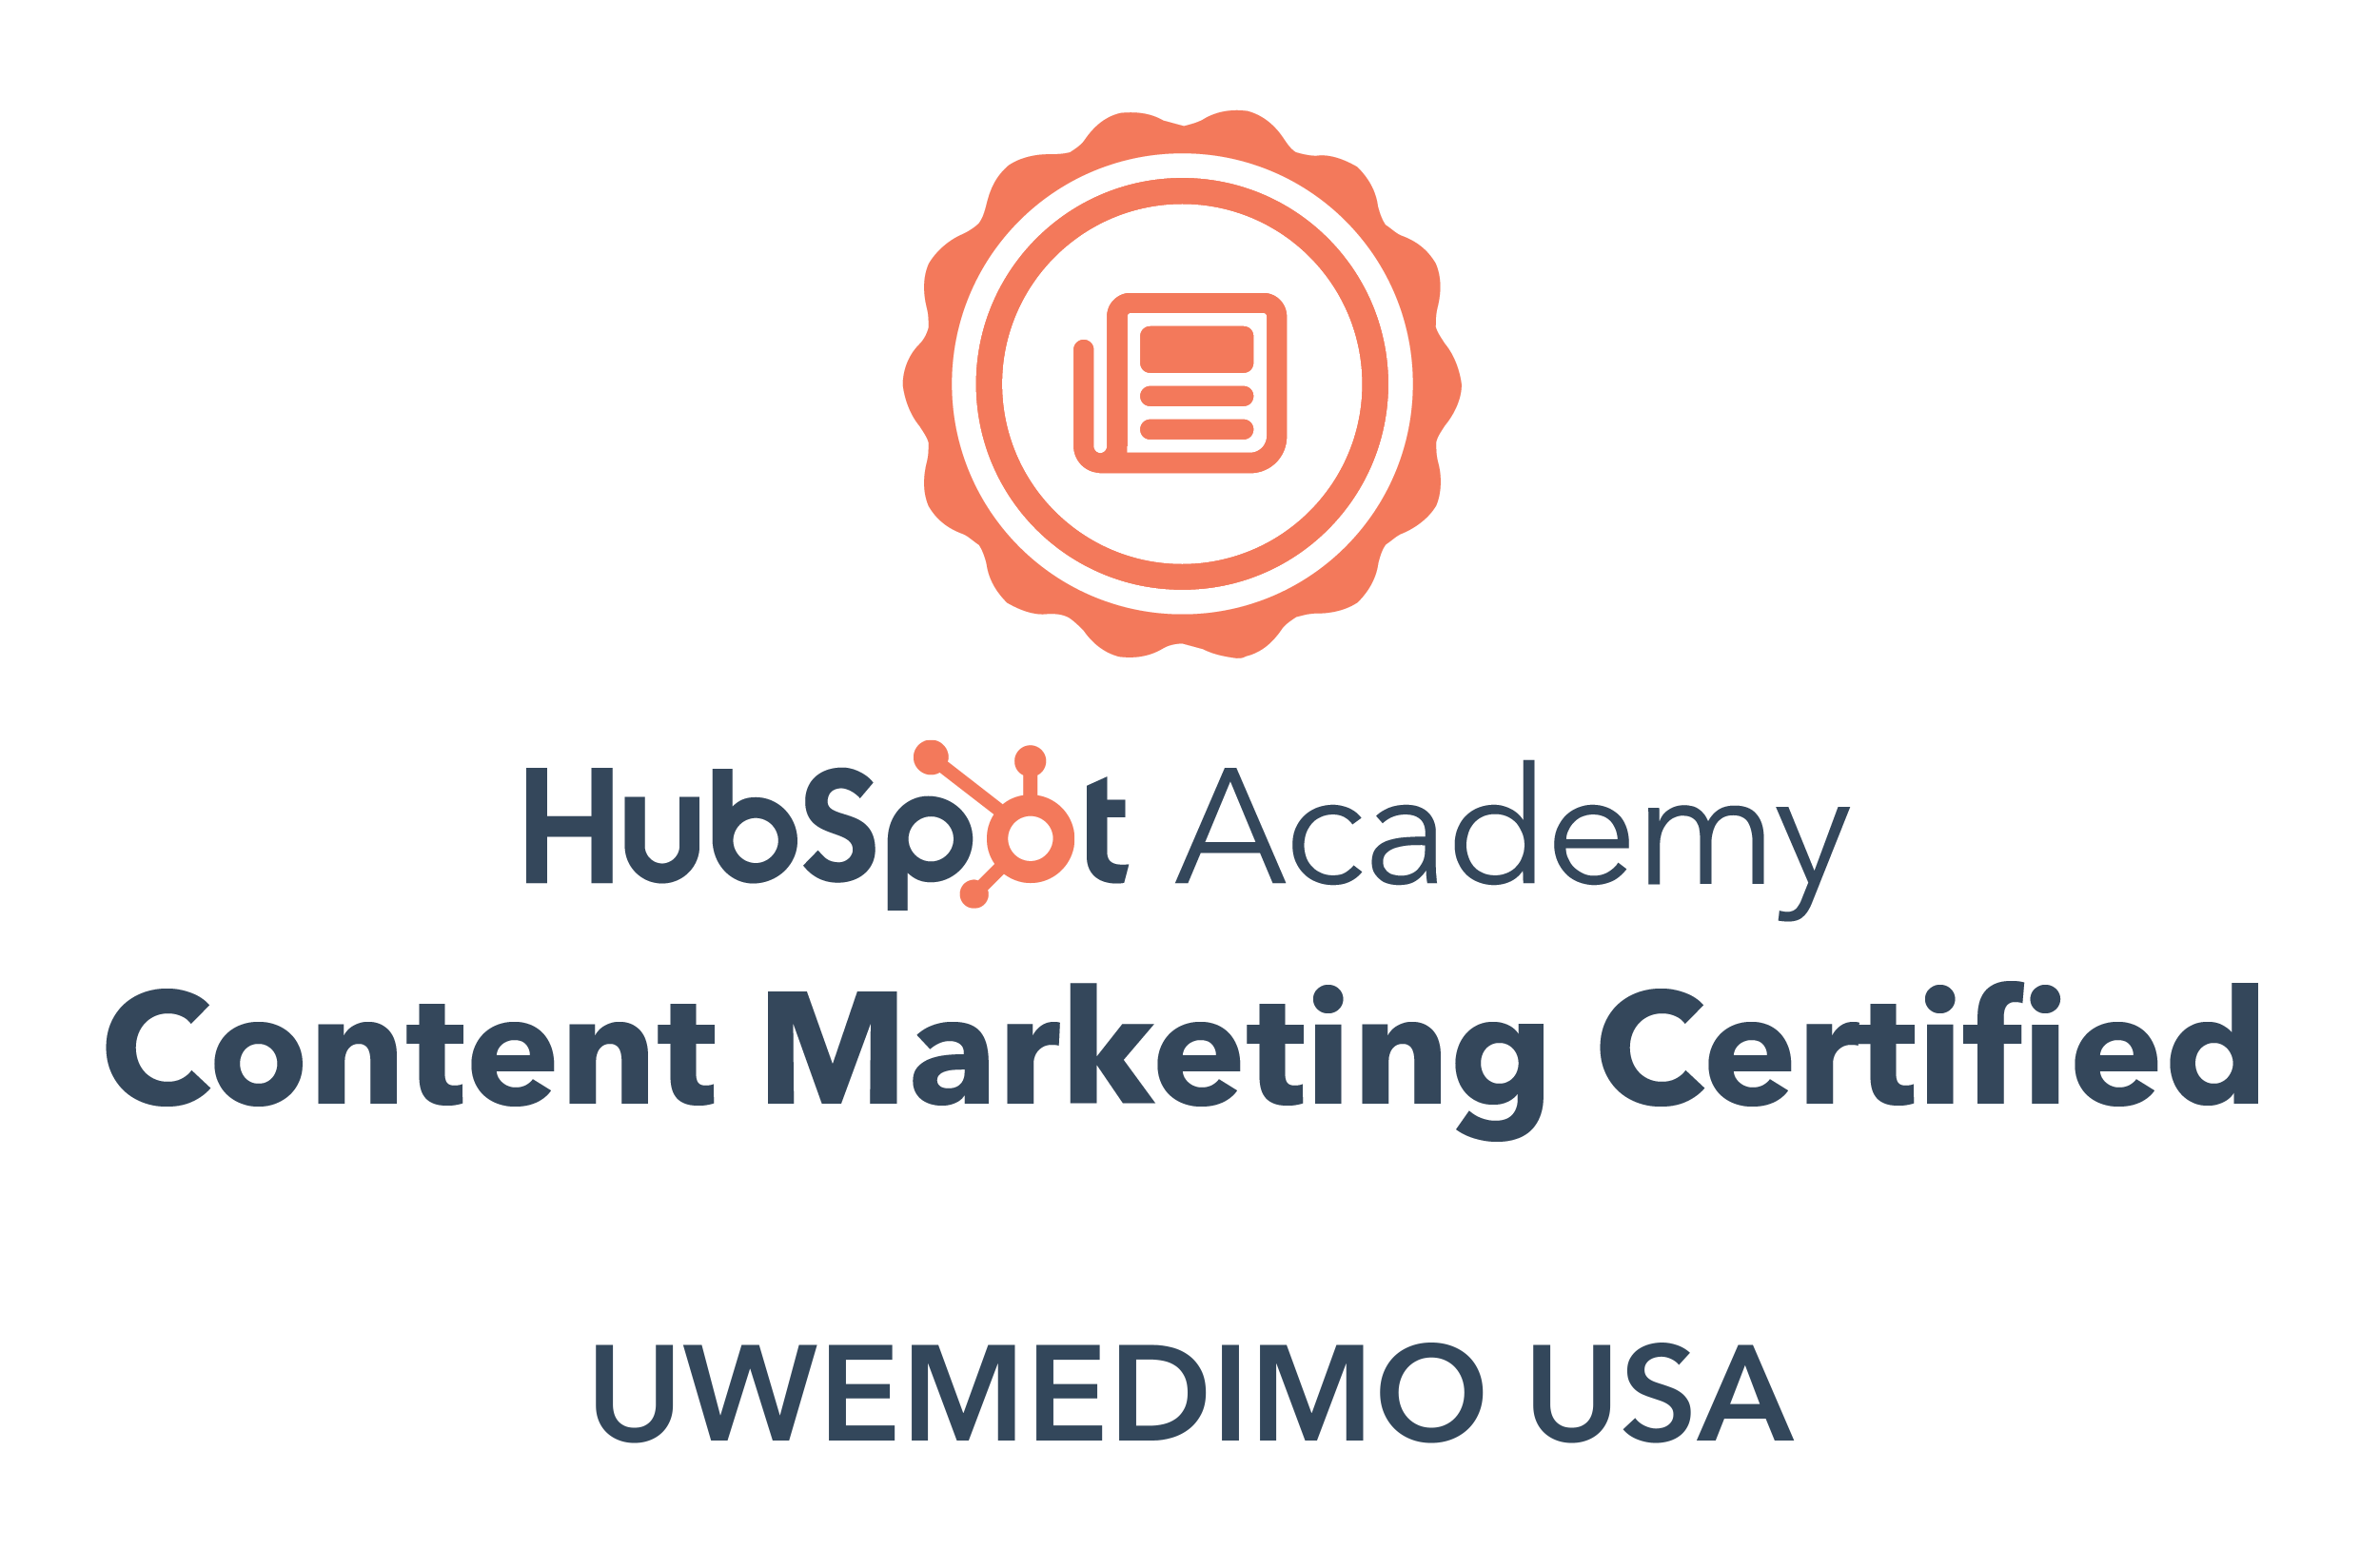 Uwemedimo Usa is content marketing certified by Hubspot